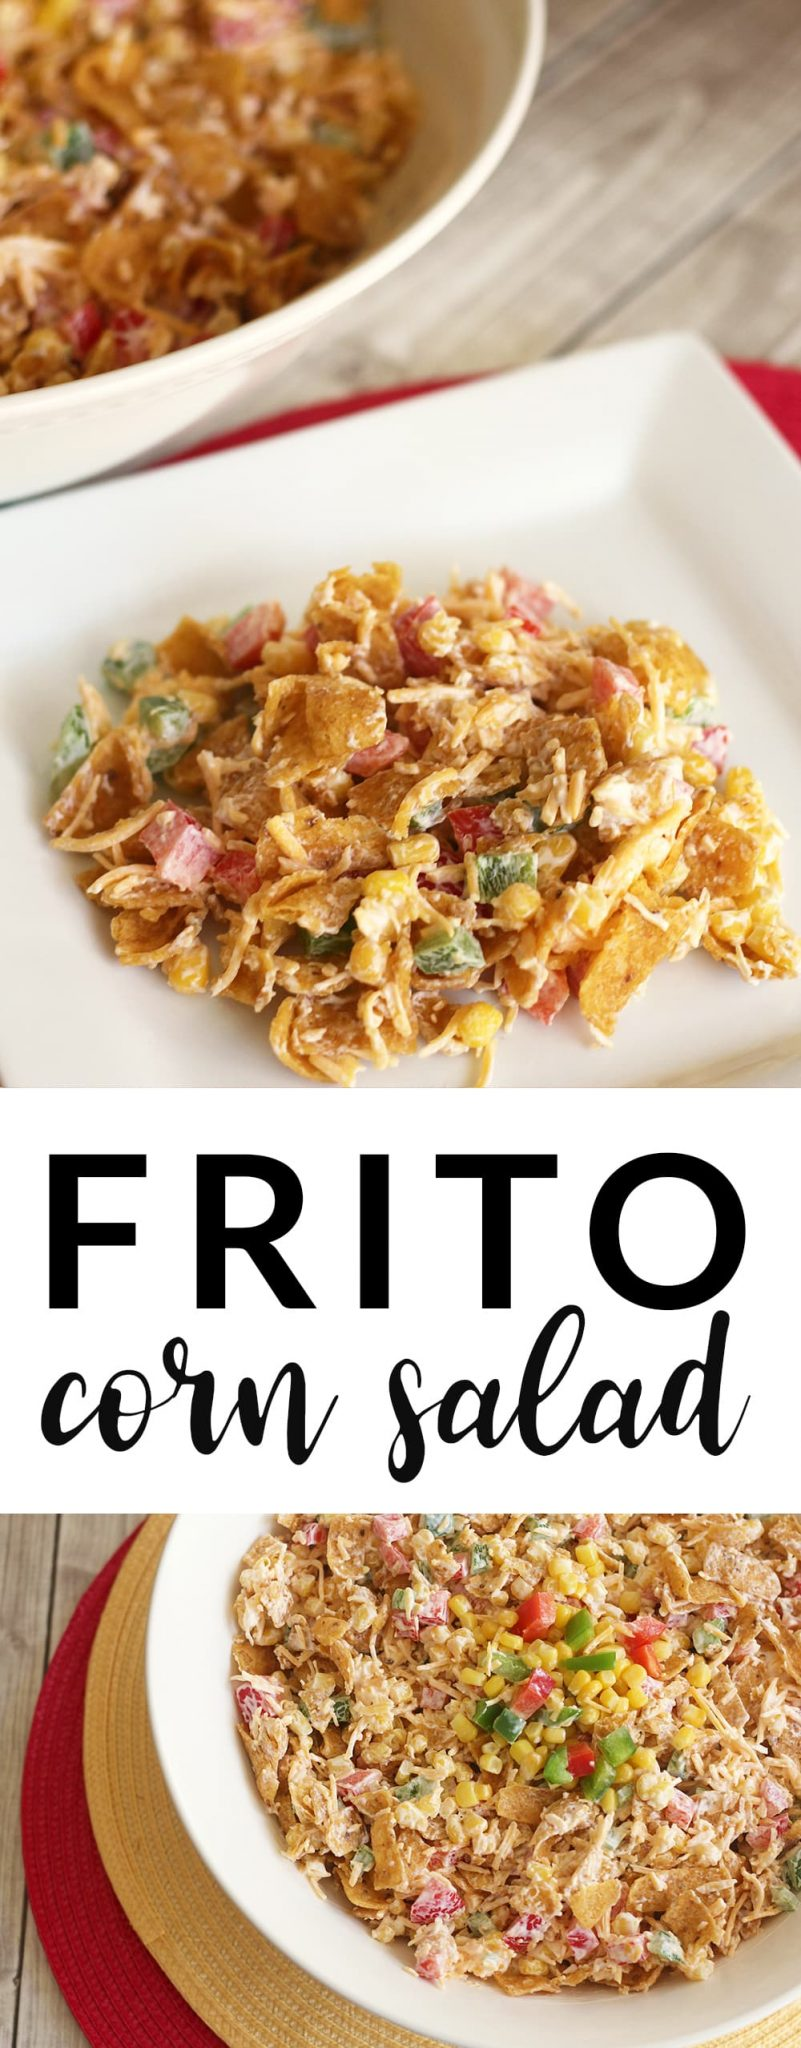 Frito Corn Salad is a summer snack that is perfect for picnics, backyard barbecues, potlucks and more. It's creamy and salty with just the right amount of crunch! A huge hit for the whole family! #FritoCornSalad #Picnic #Barbecue #CampingFood #Potluck